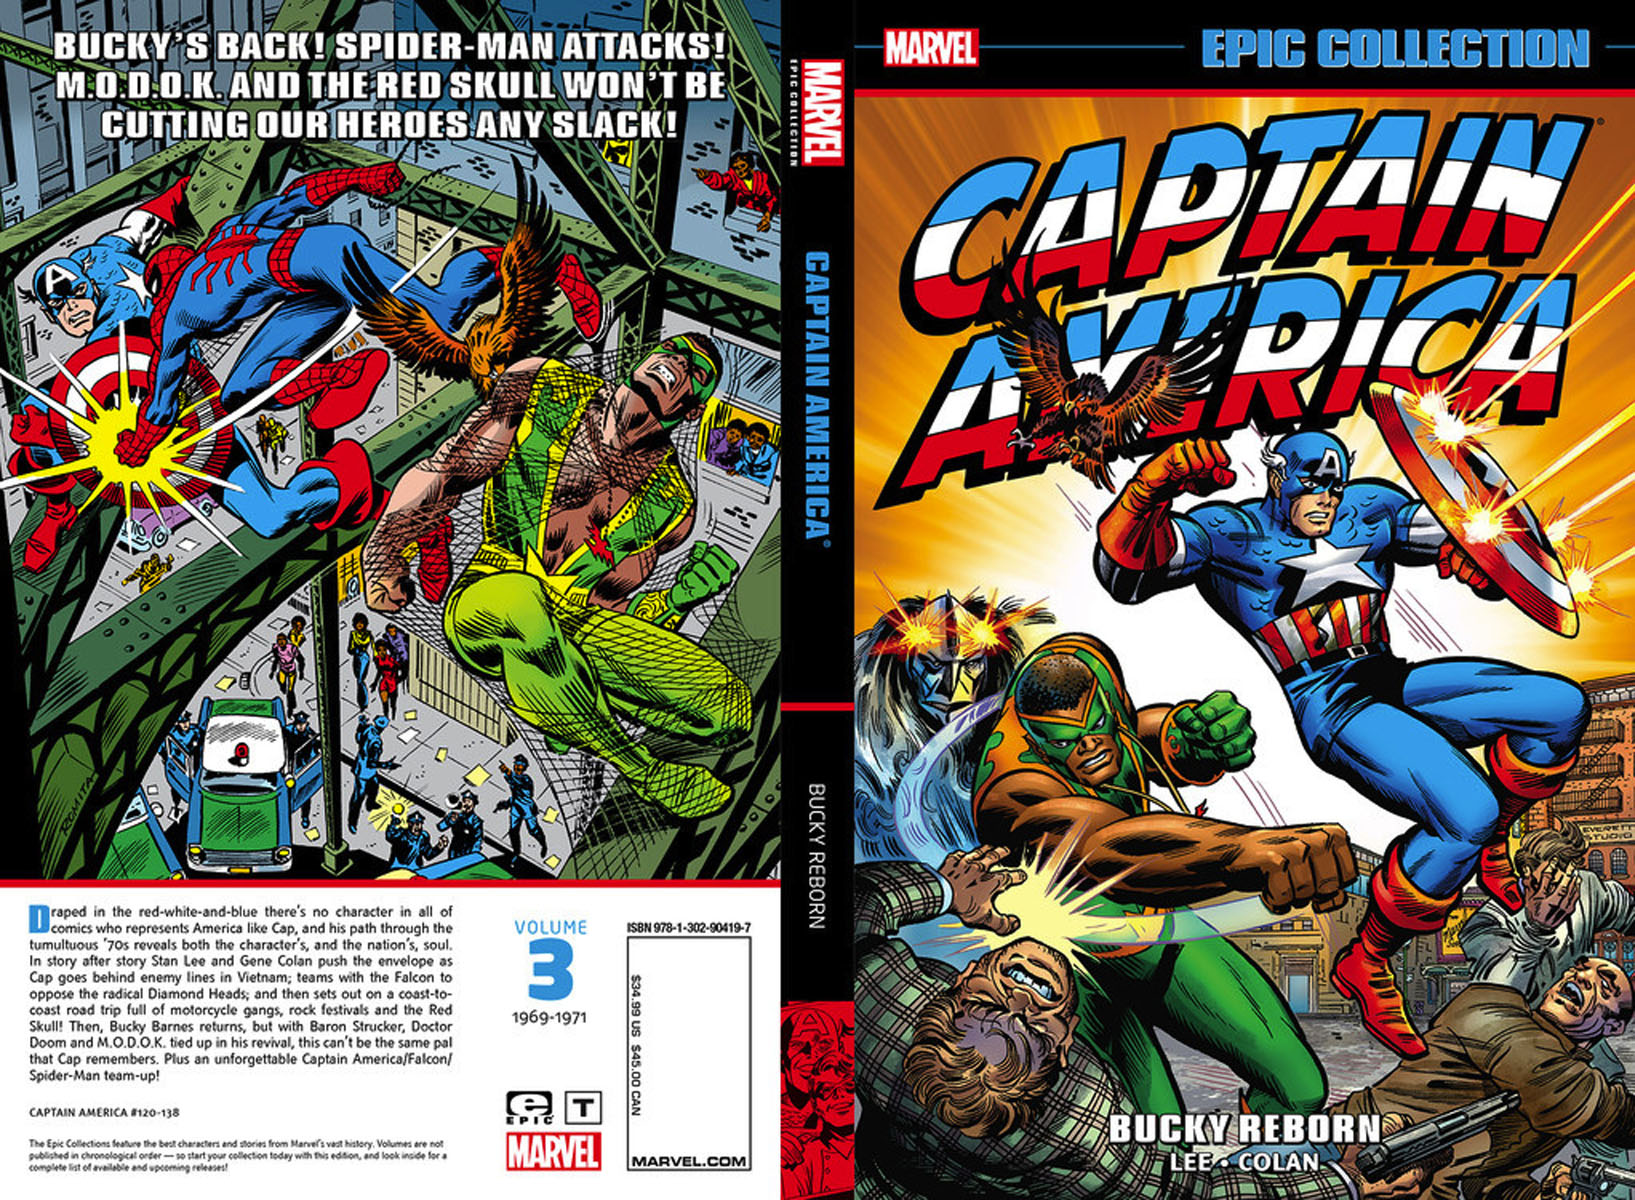 Captain America Epic Collection: Bucky Reborn television politics and the transition to democracy in latin america